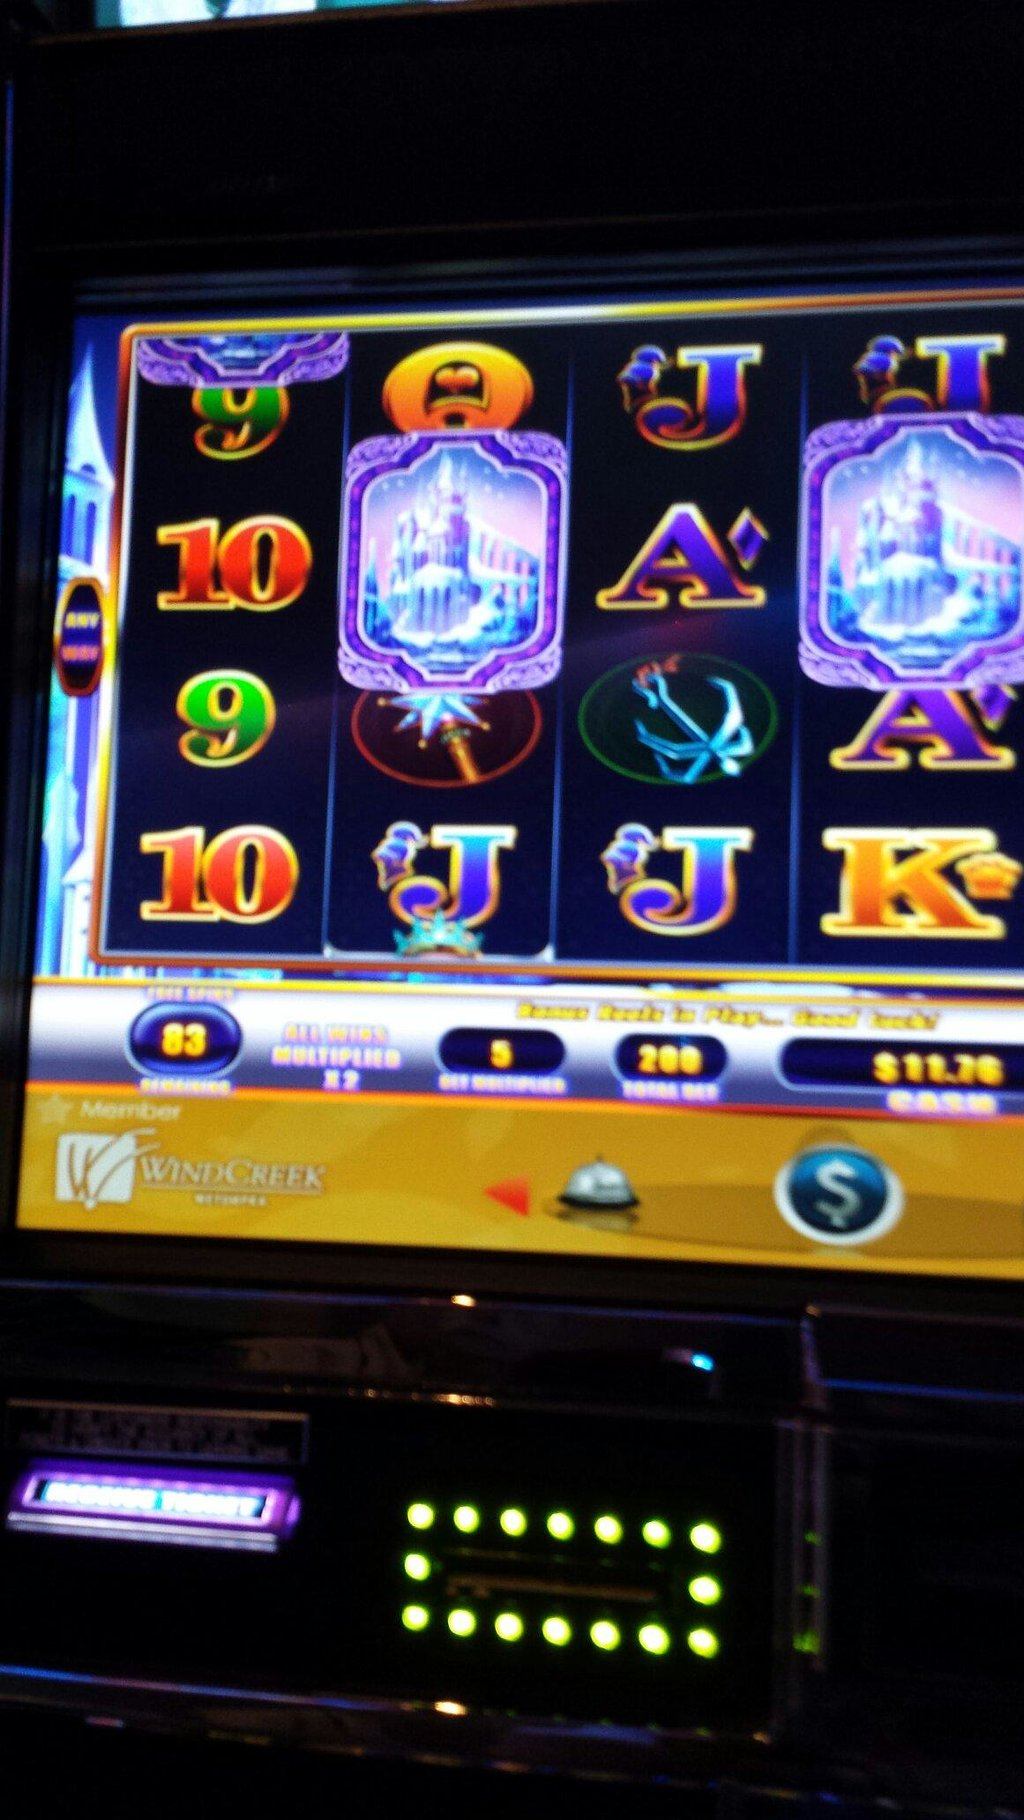 Notice that I have 83 spins left out of 100 betting the max, yet I only have $15! When it was do